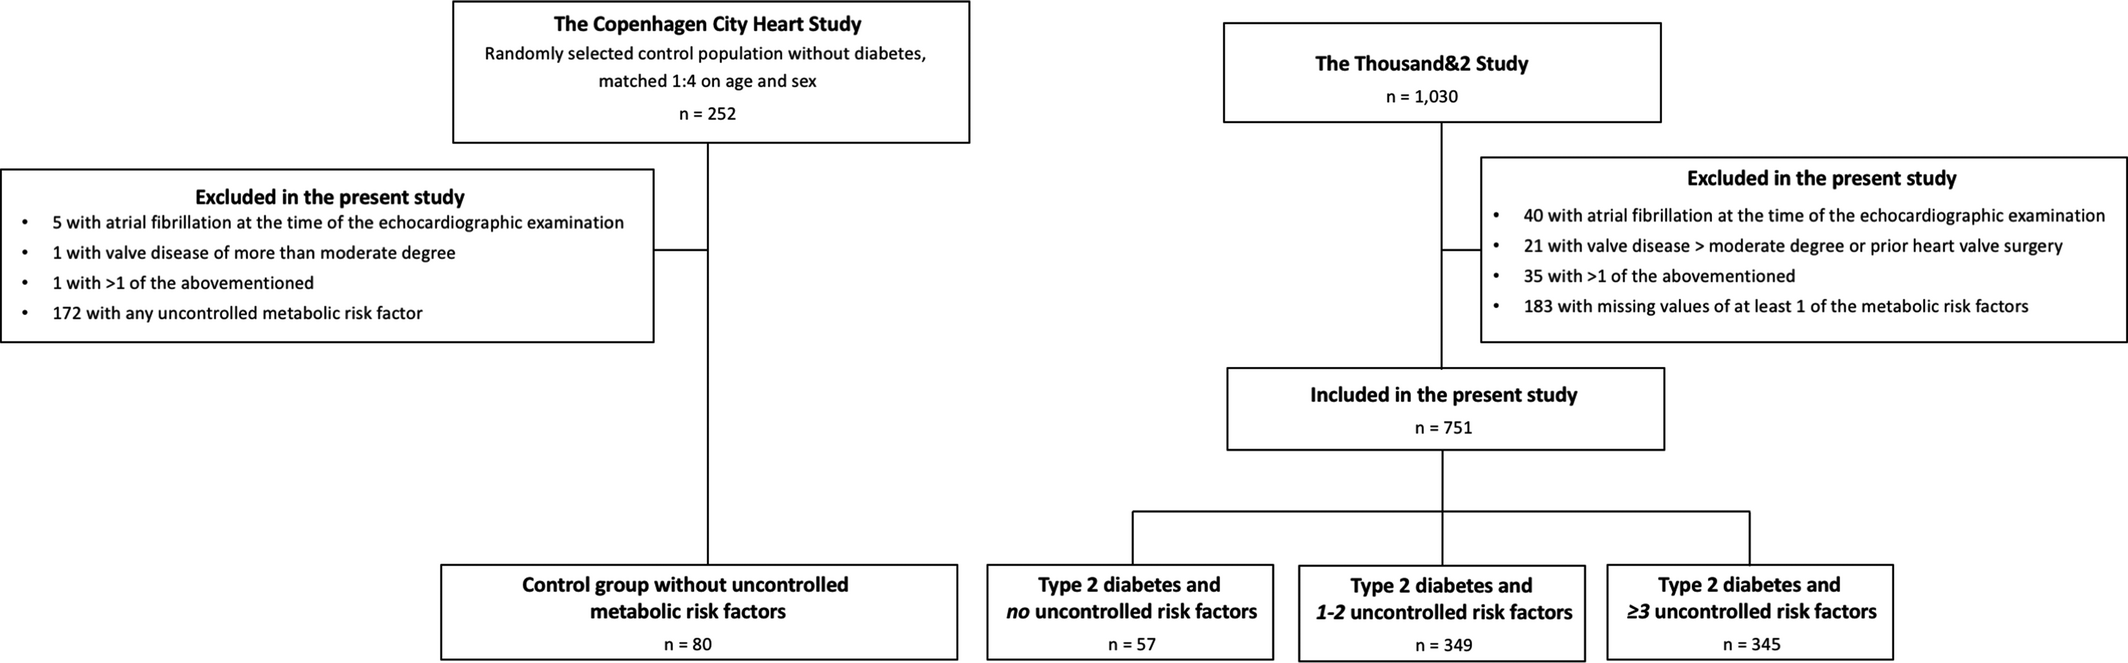 Burden of Uncontrolled Metabolic Risk Factors and Left